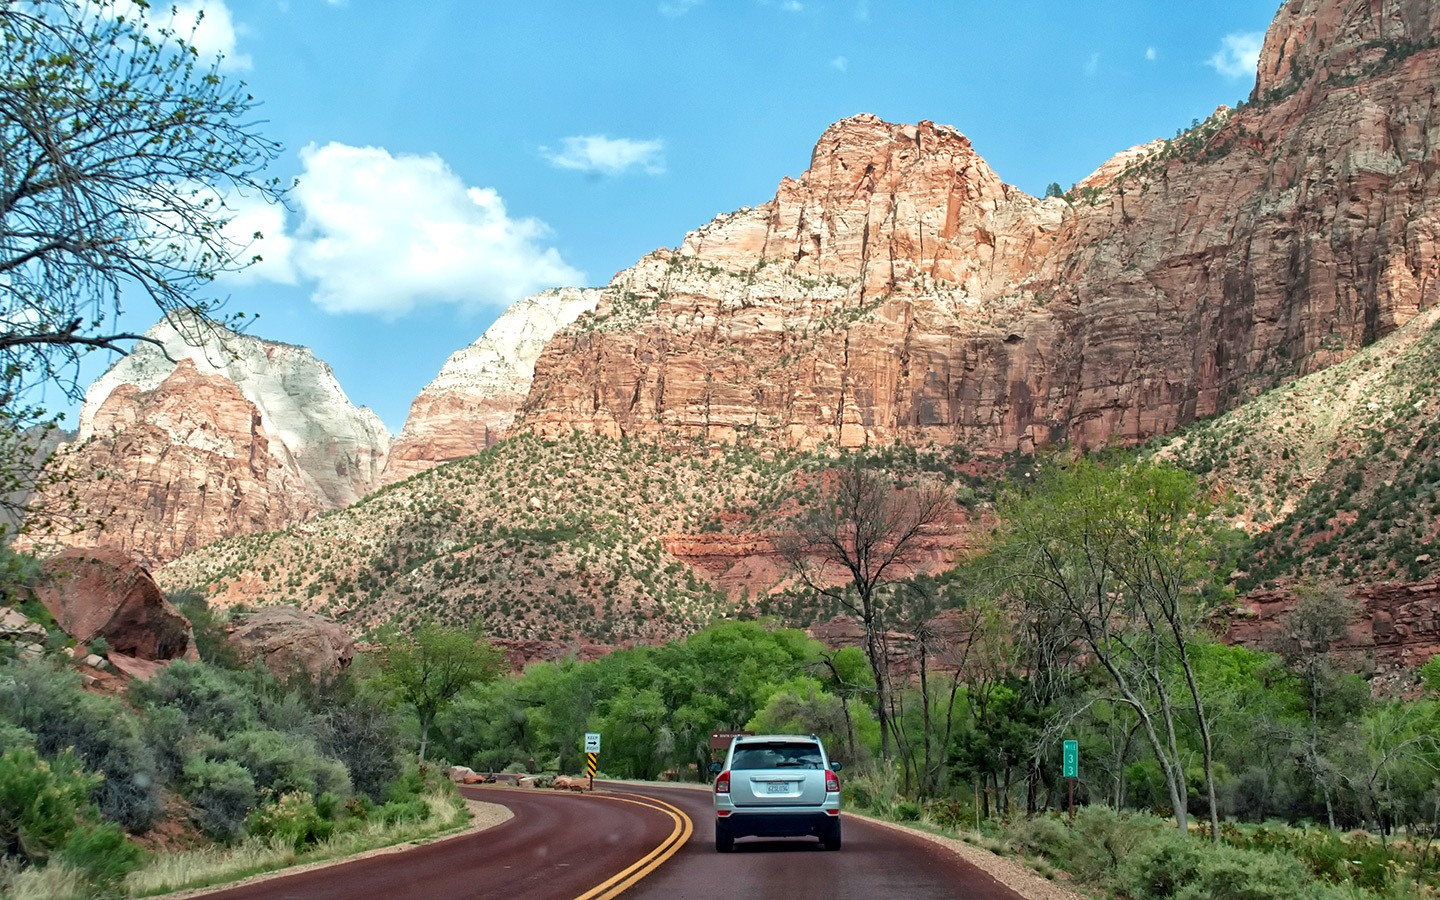 The Zion–Mount Carmel Highway scenic drive in the southwest USA